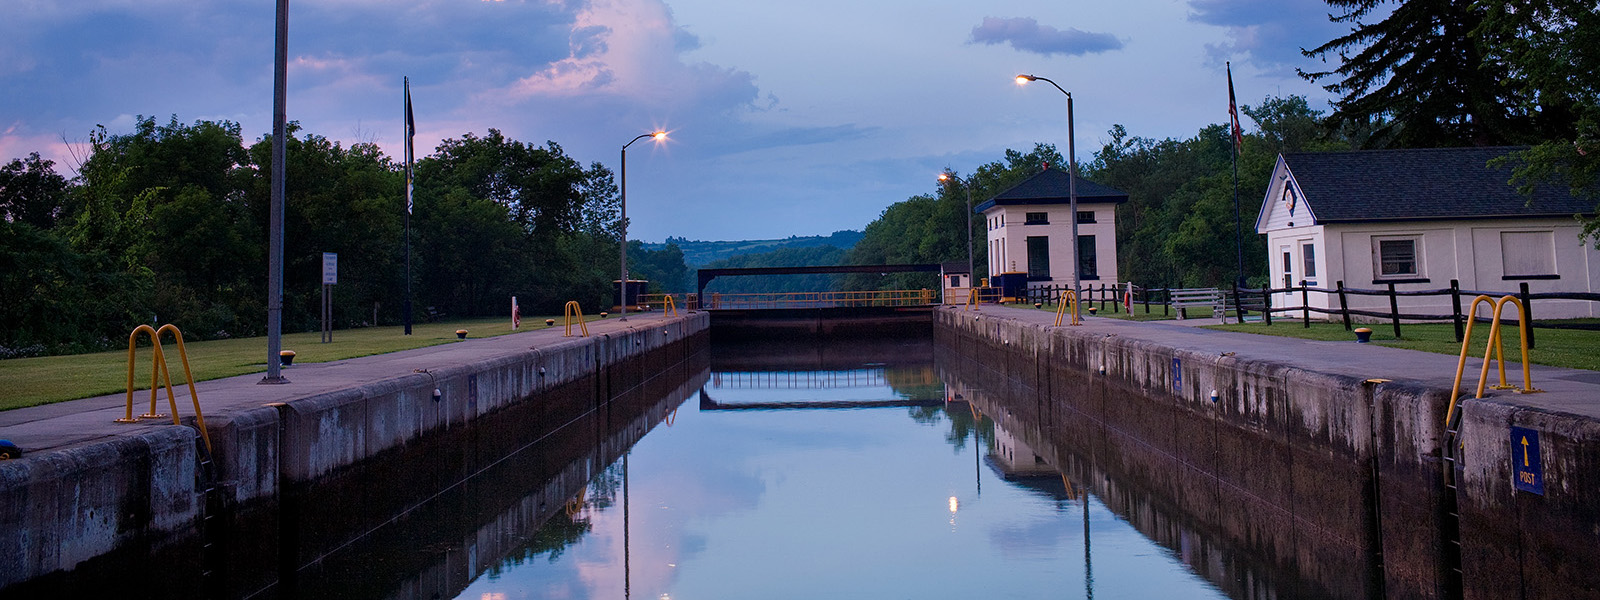 Erie Canal Lock 16 in Mindenville